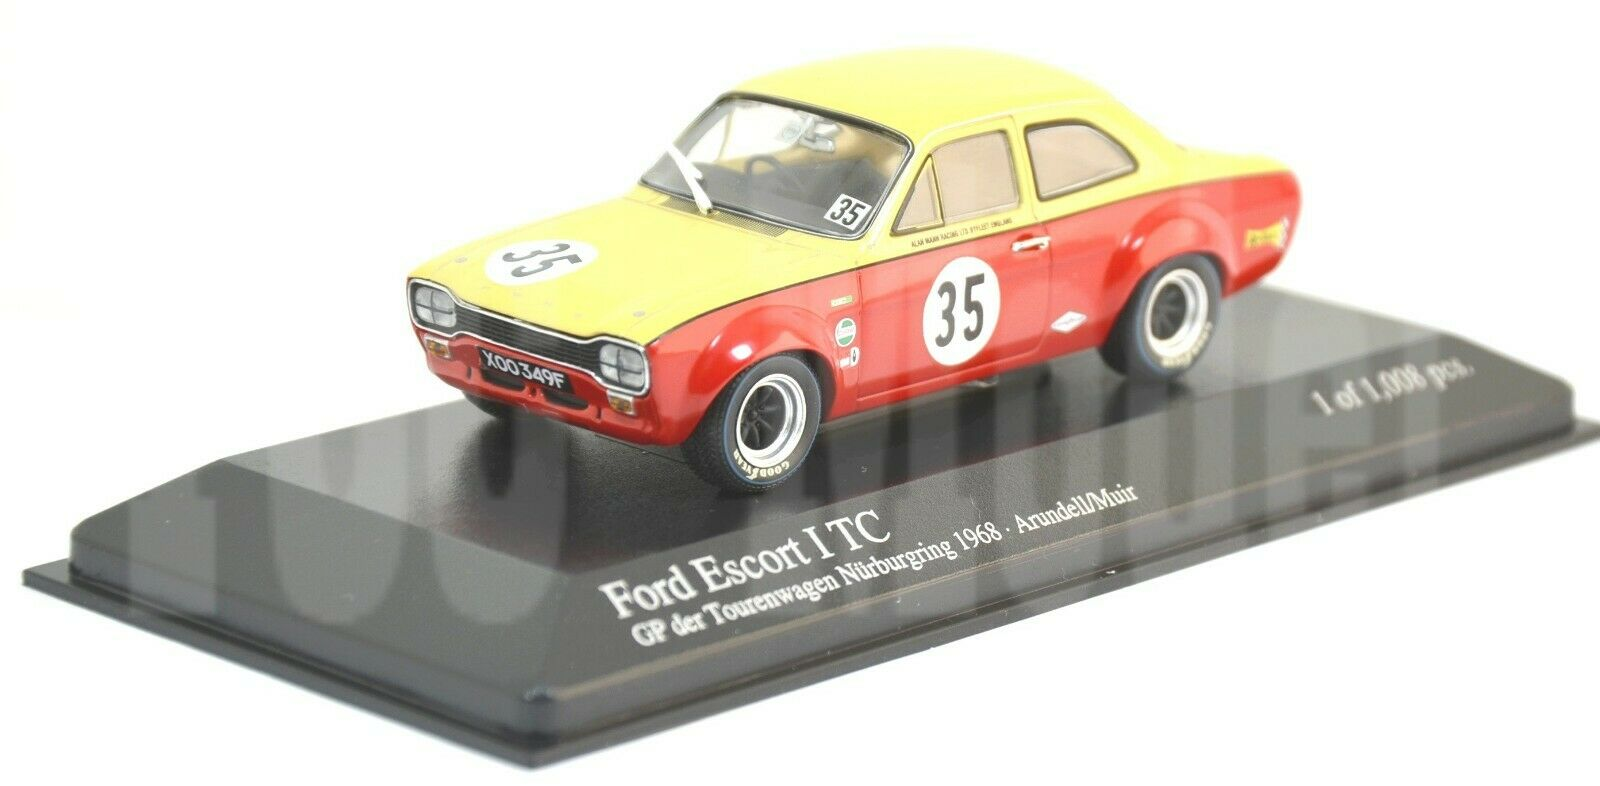 M1453 Minichamps 1 43 - 1968 Ford Escort I TC Arundell Muir - Ltd.Ed.